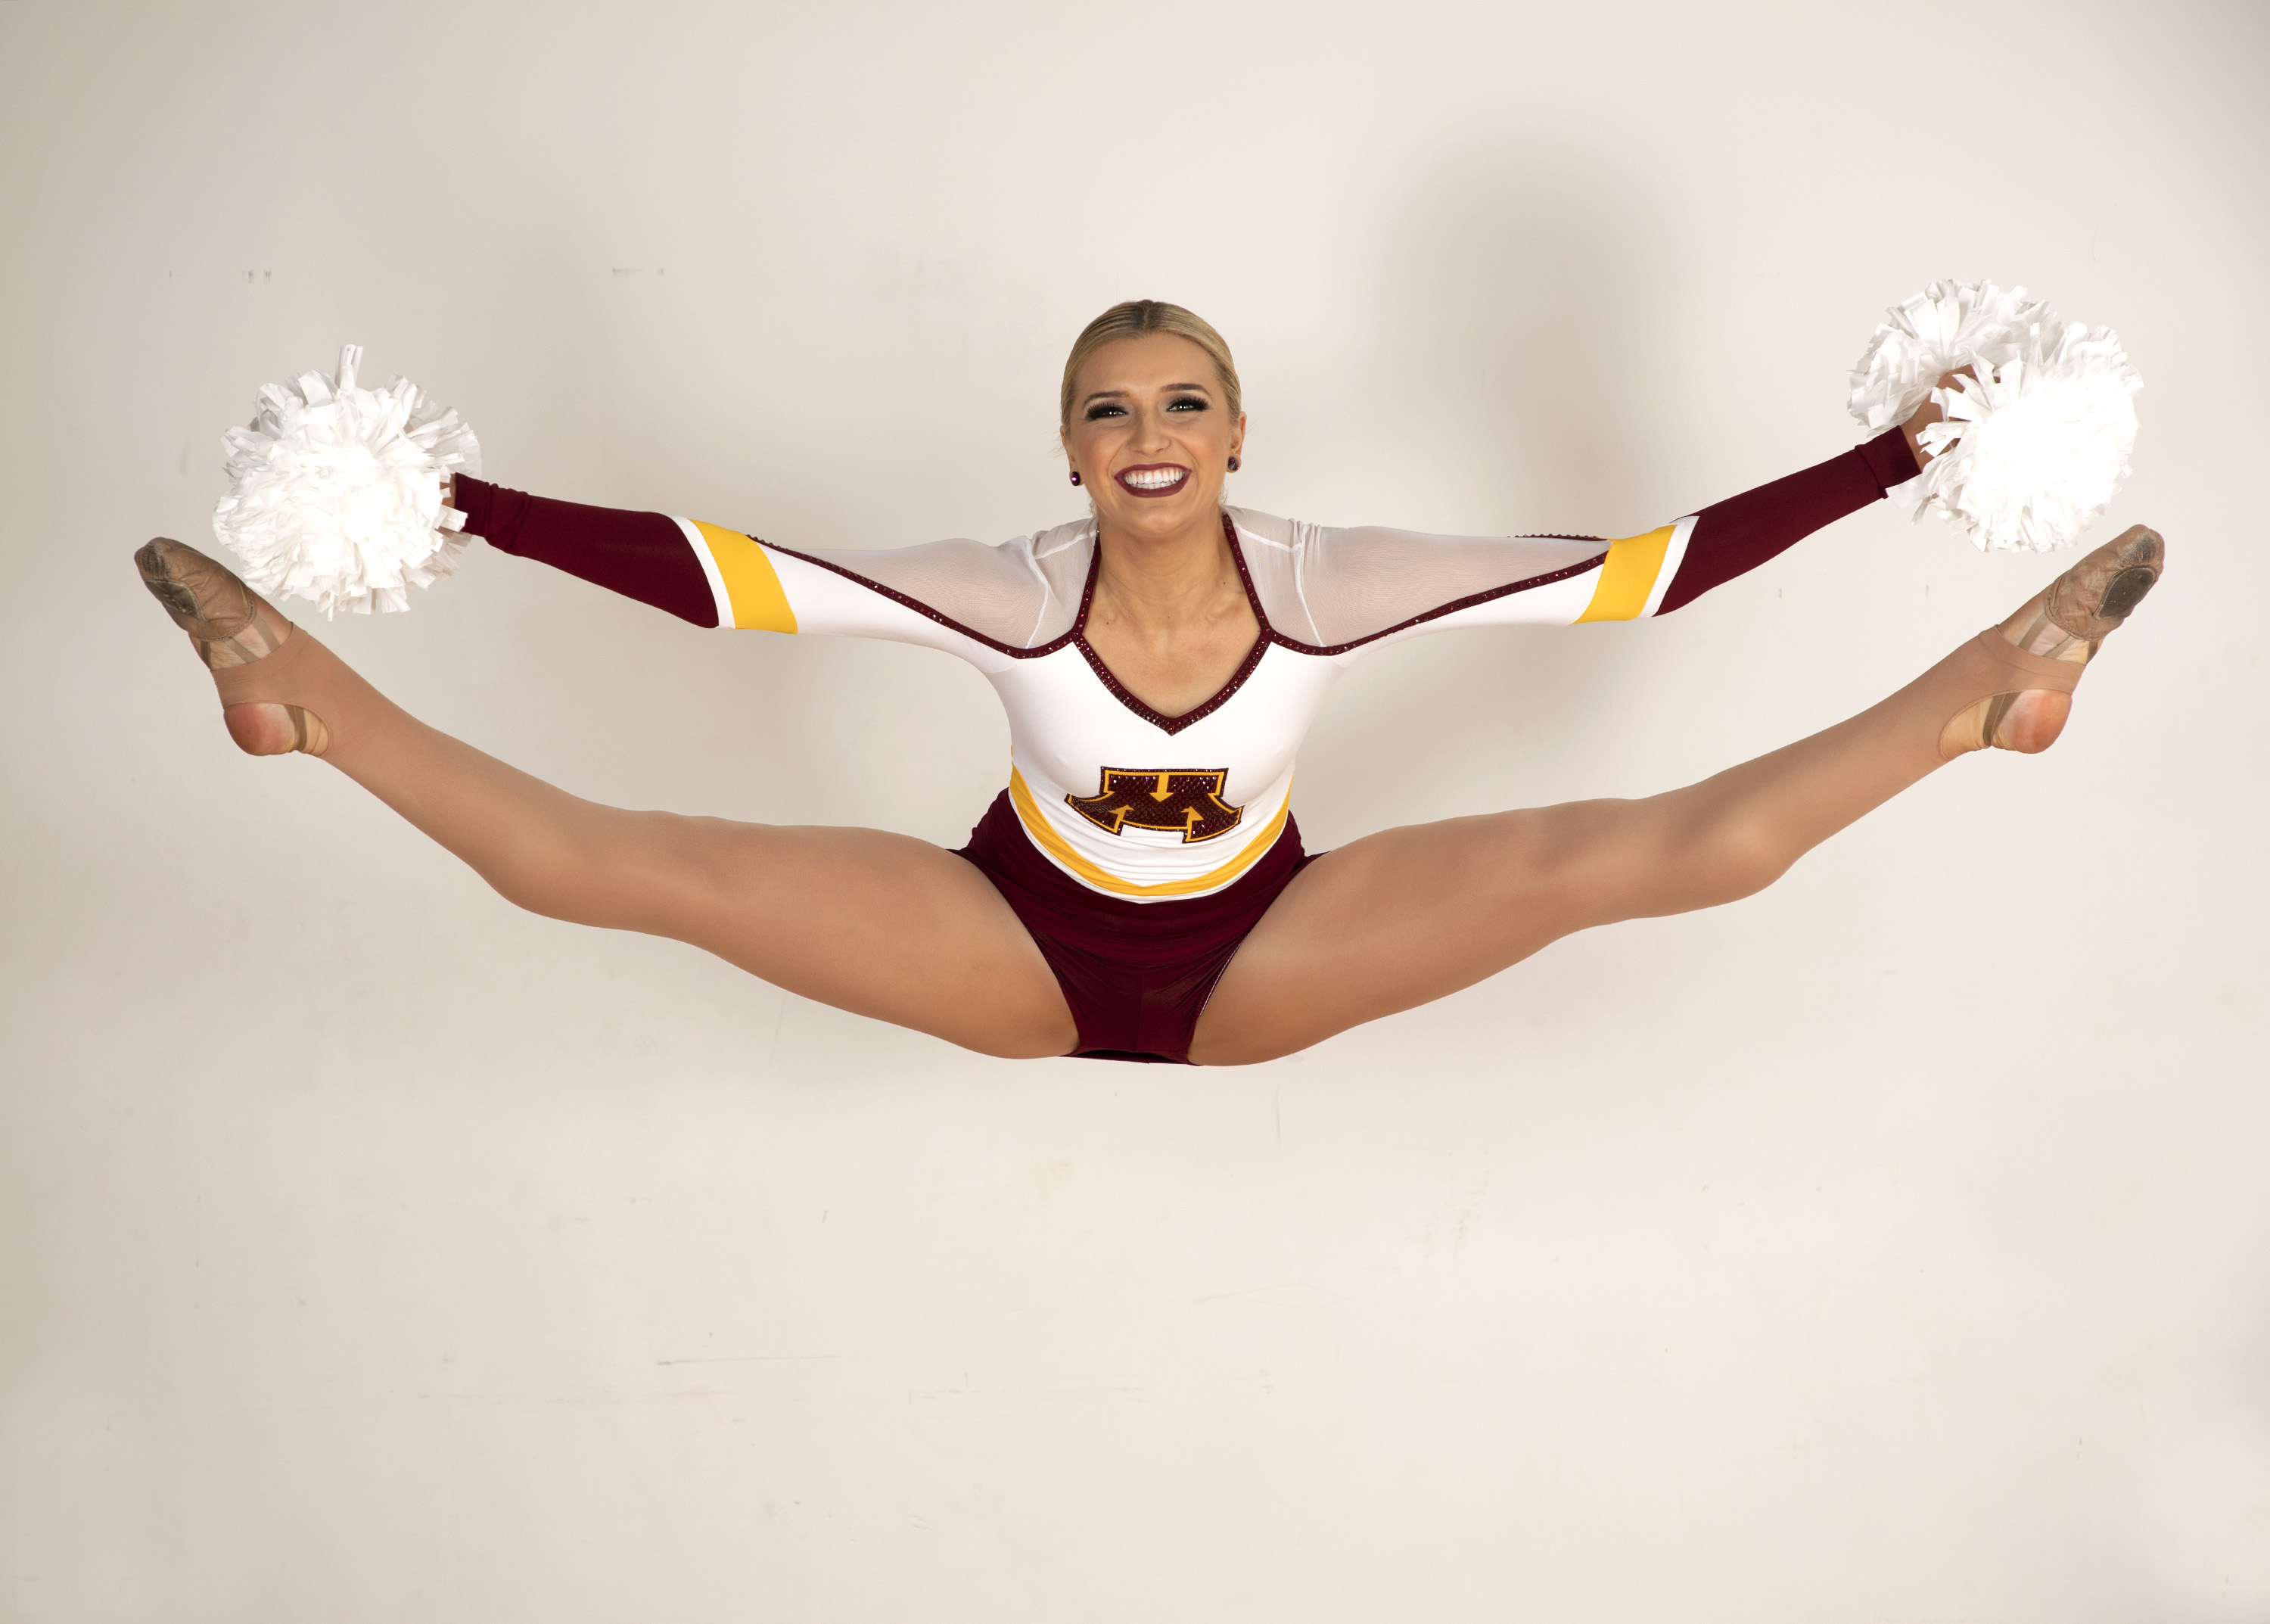 University of Minnesota Dance Team - Collegiate Dance